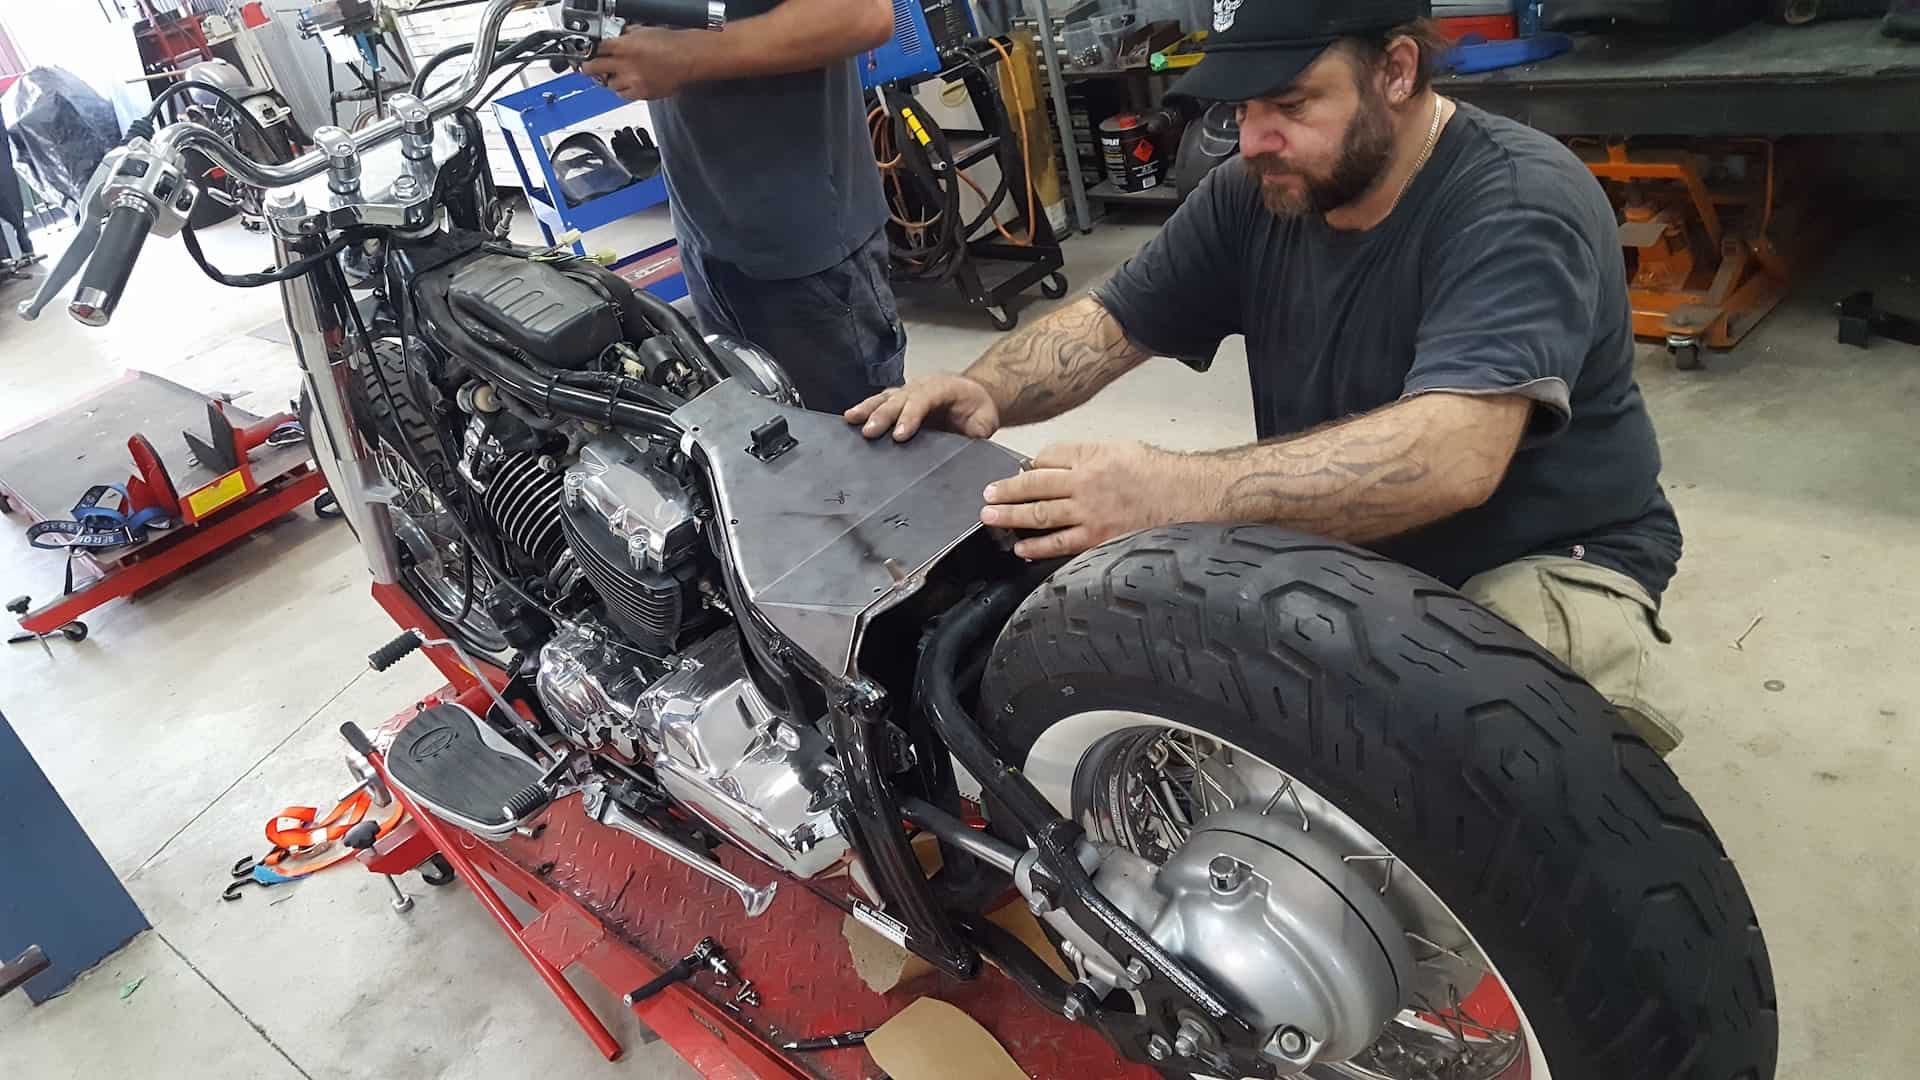 Full Custom Bike Service From Chassis To Custom Headlights